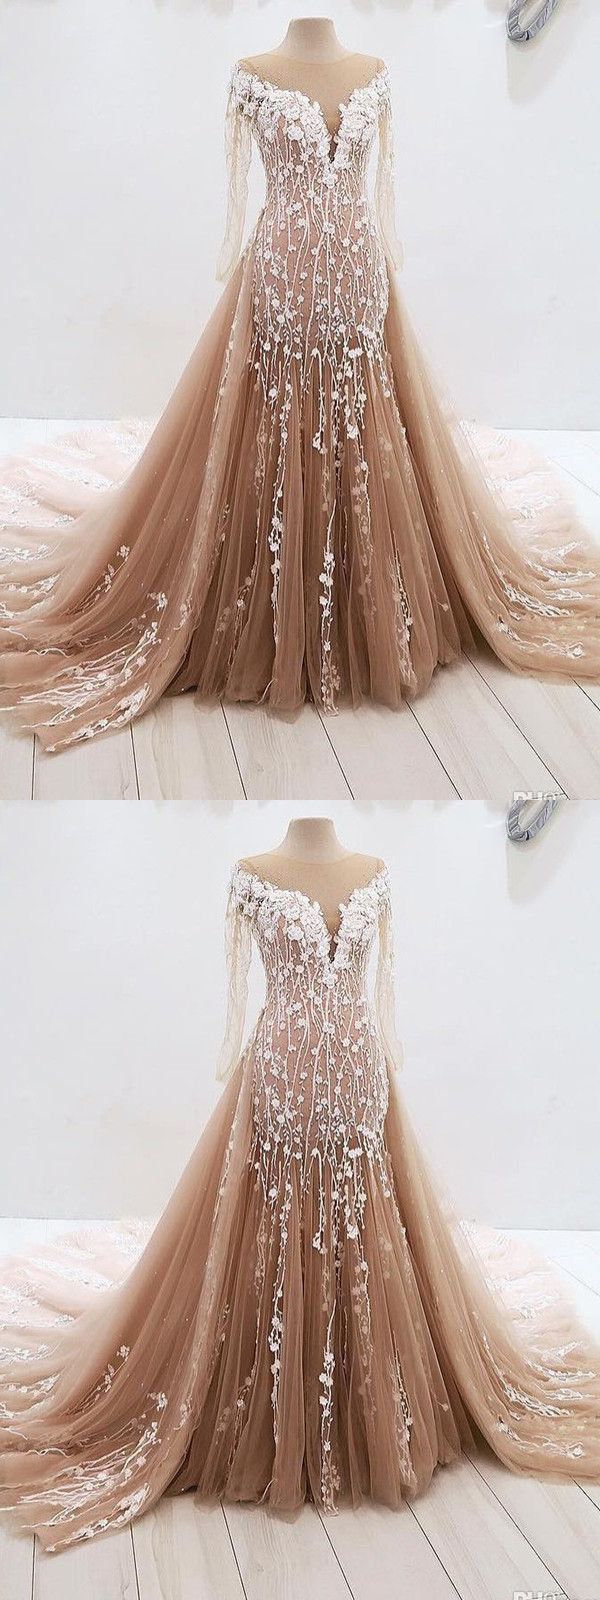 Prom dresses long prom dresses laceprom dresses cheapprom dresses